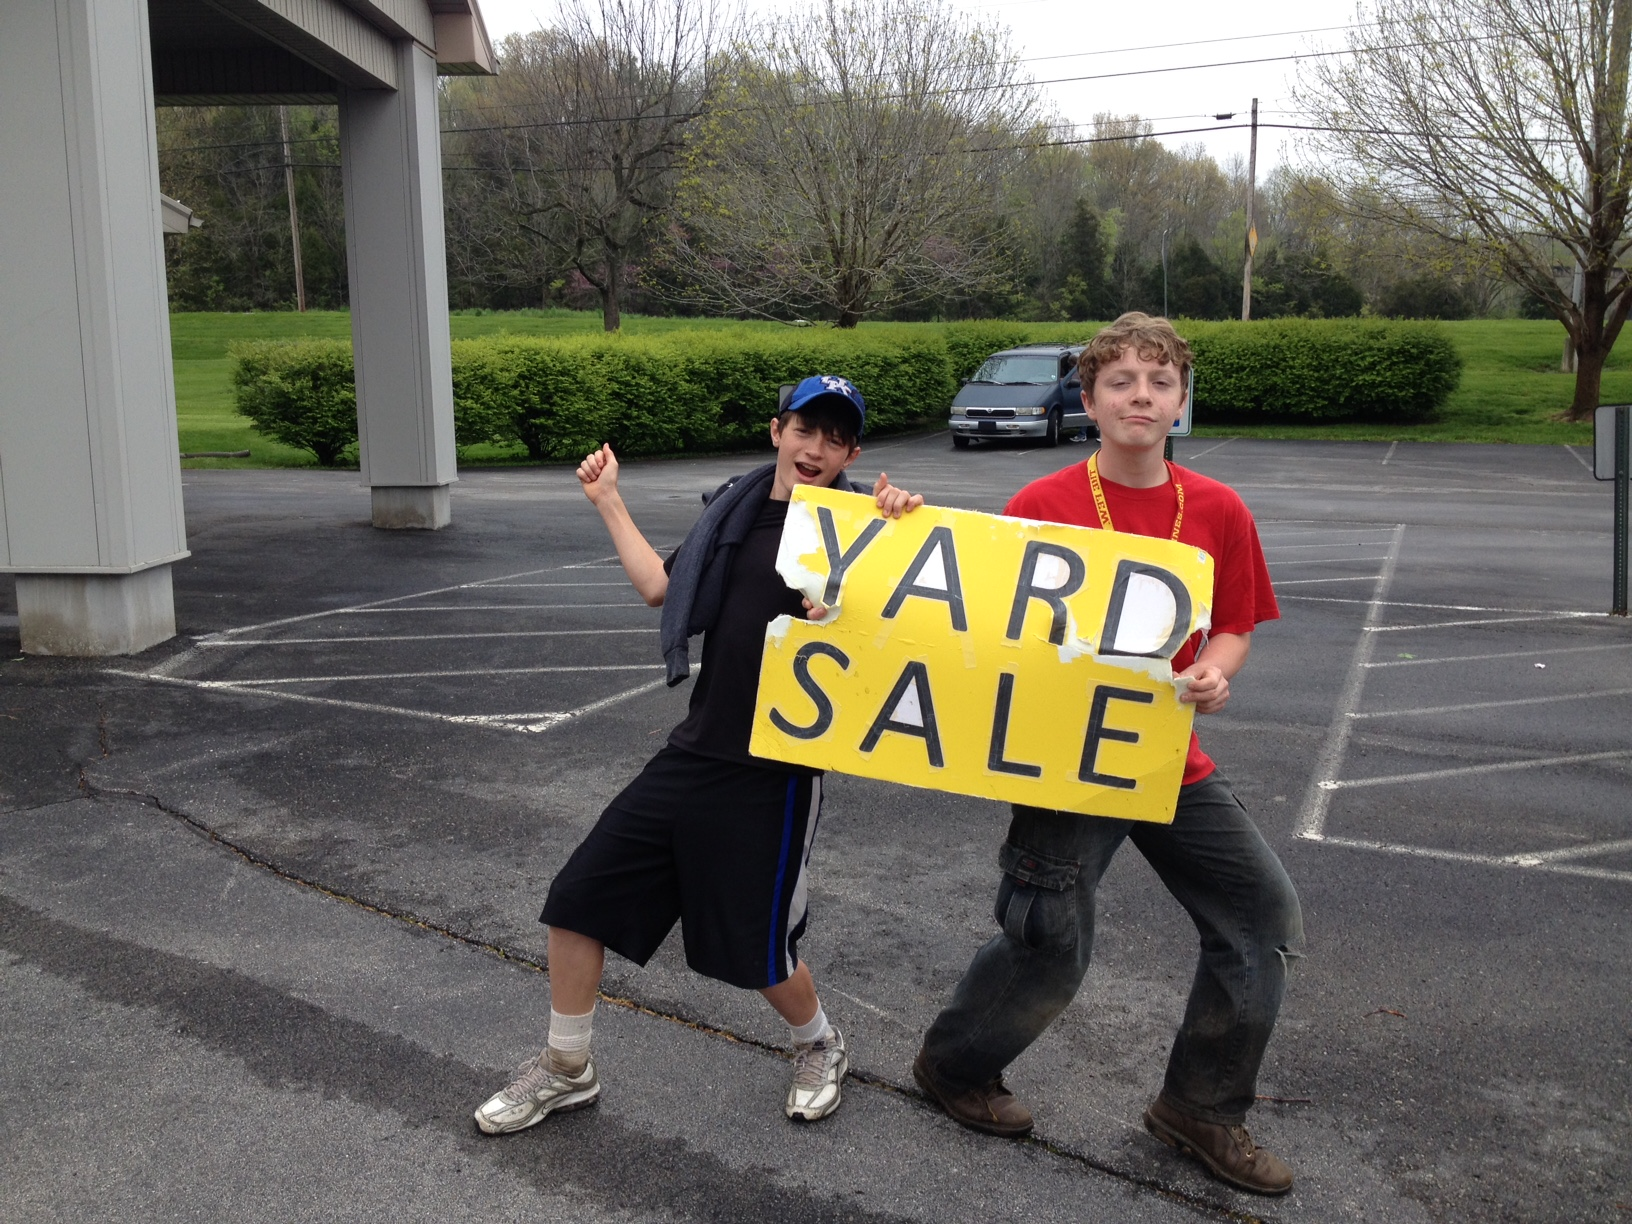 These two played a major role in drawing attention to the sale with their dance moves! :)